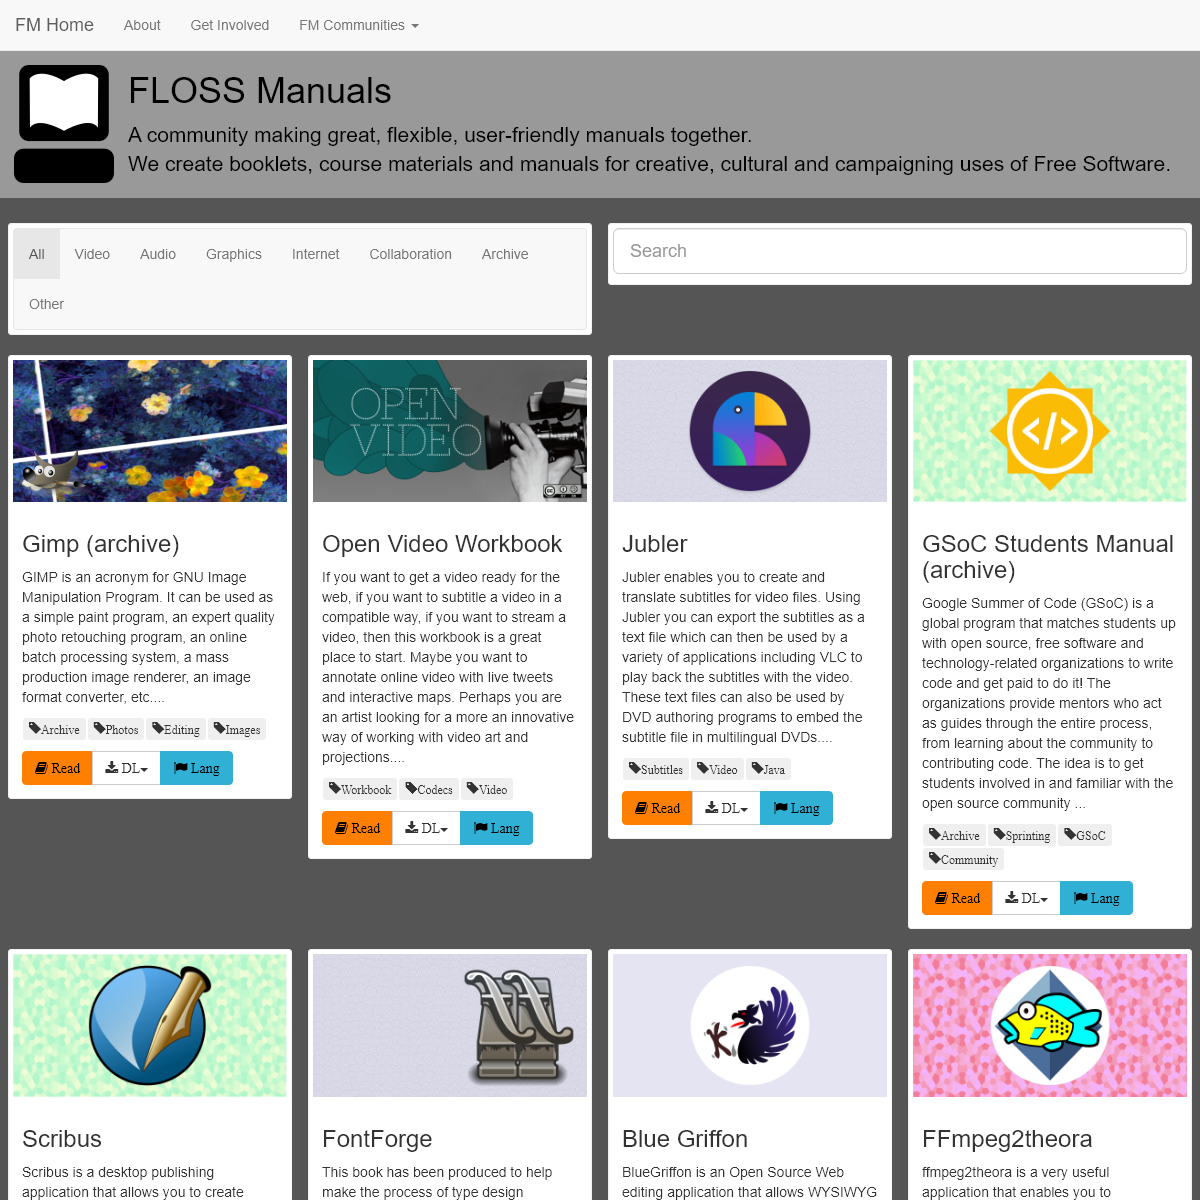 Floss Manuals - Free Manuals for Free Software